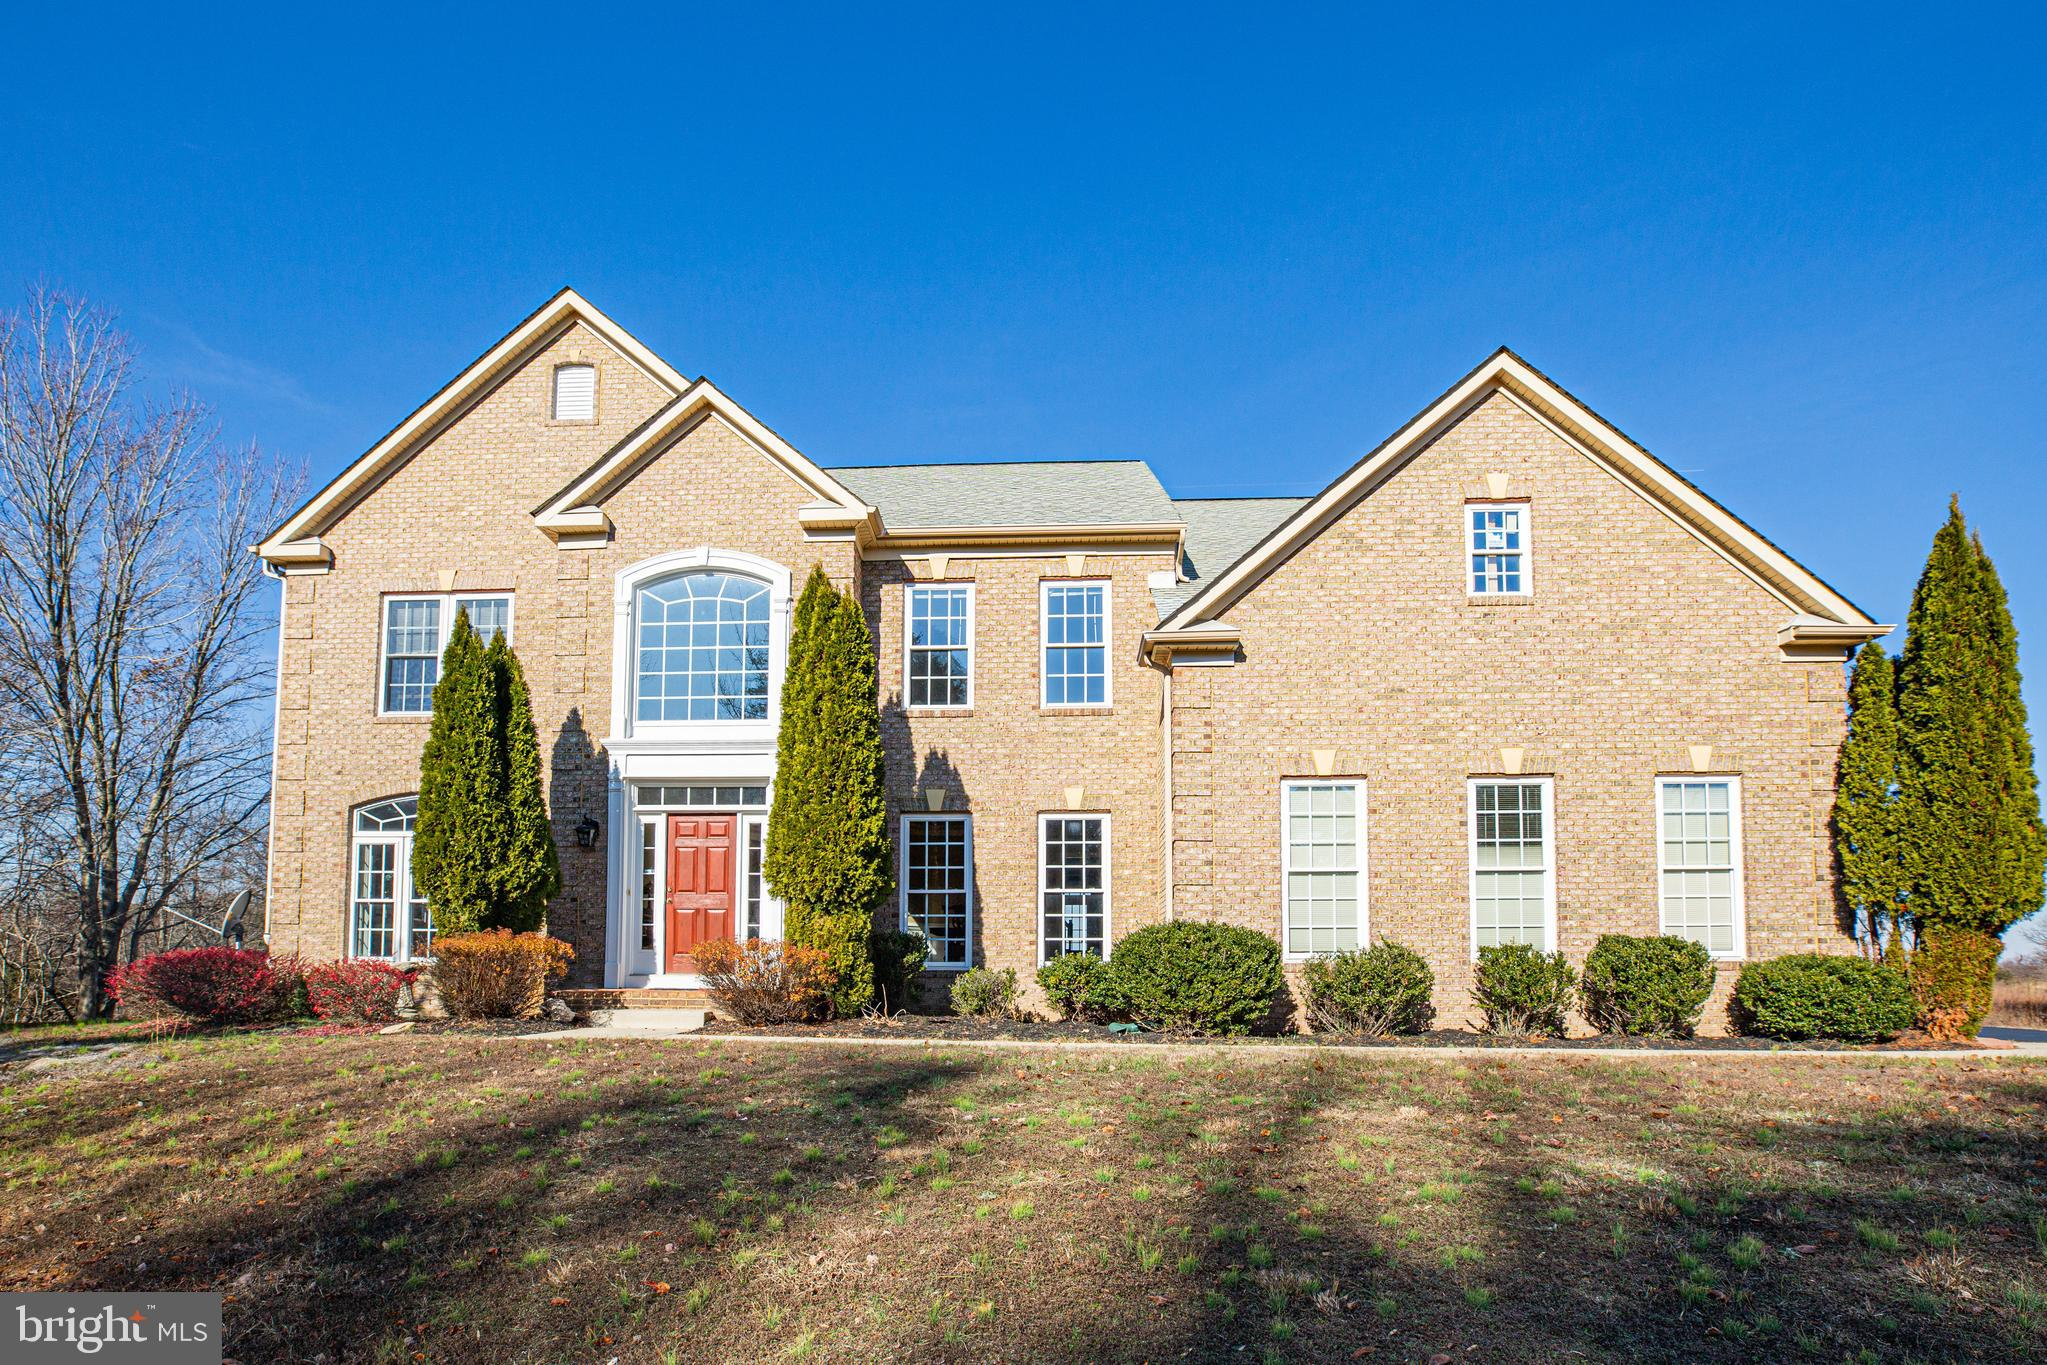 8023 FITZHUGH LANE, KING GEORGE, VA 22485